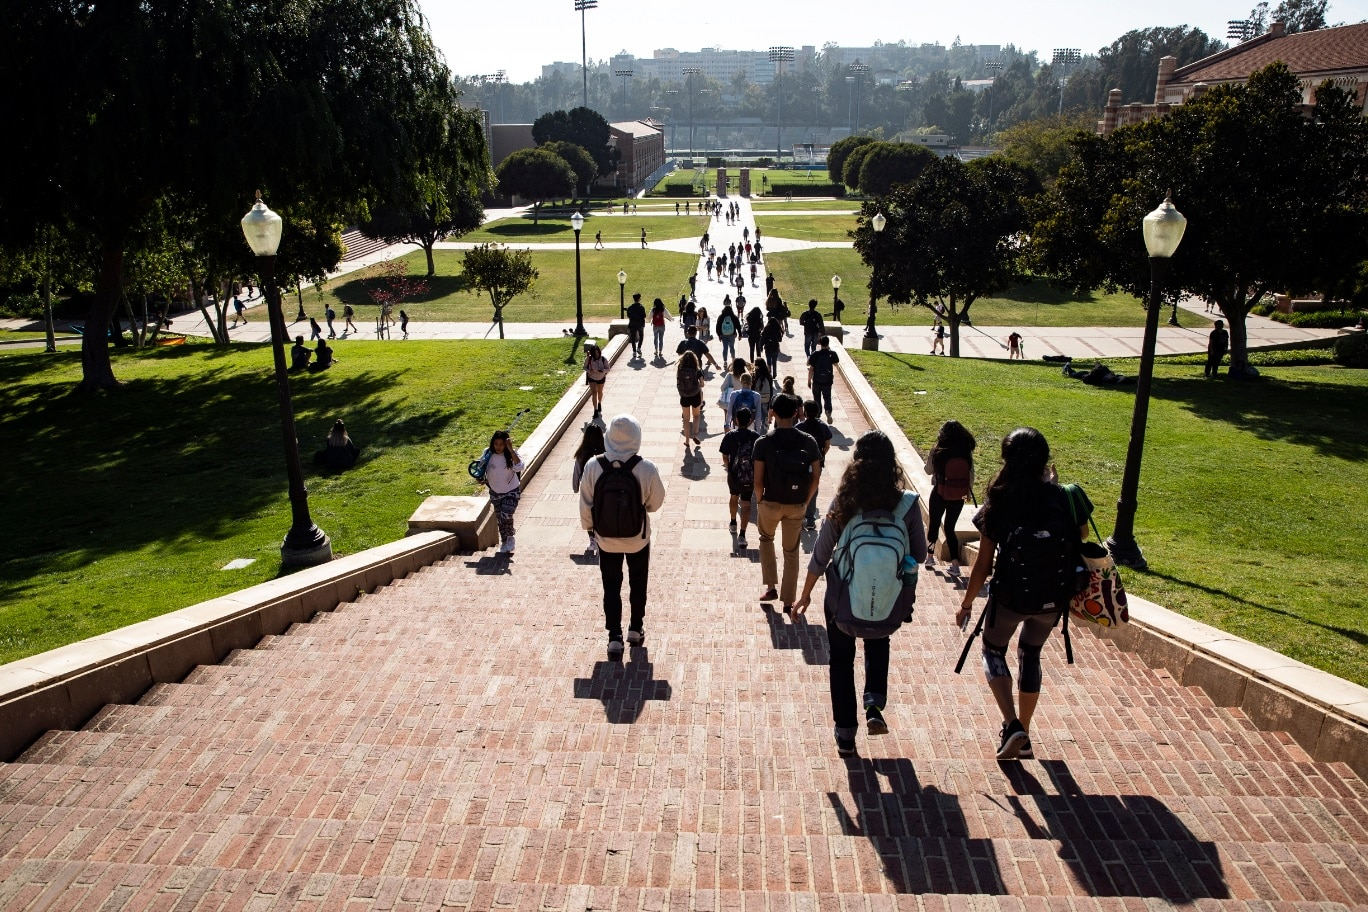 Students go on a large staircase on the campus of the University of California, Los Angeles (UCLA) in Los Angeles, California, USA, on April 25, 2018.